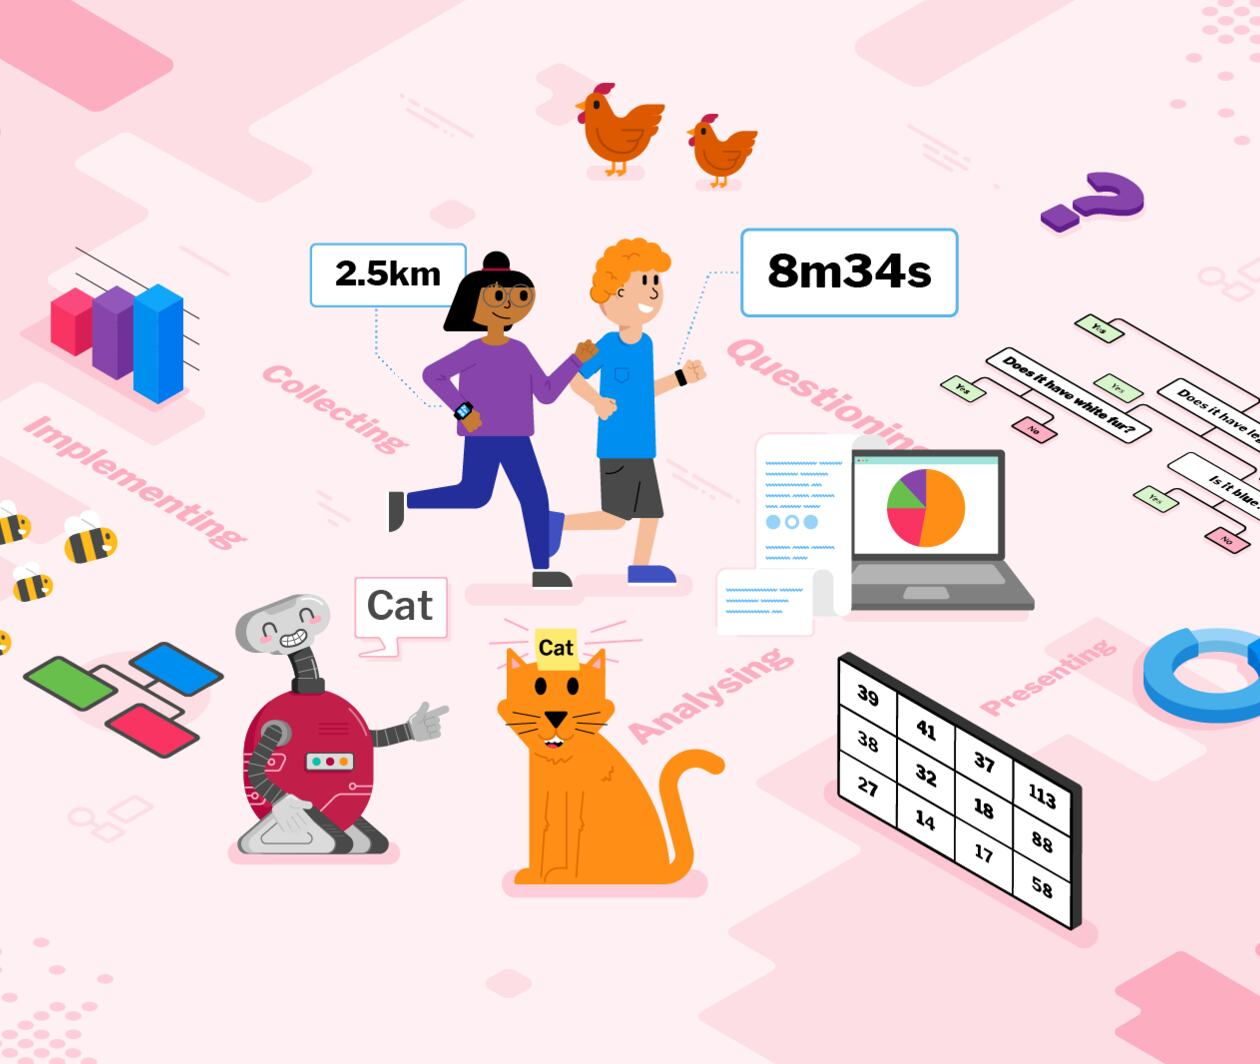 Teaching Data and Information to 5- to 11-year-olds